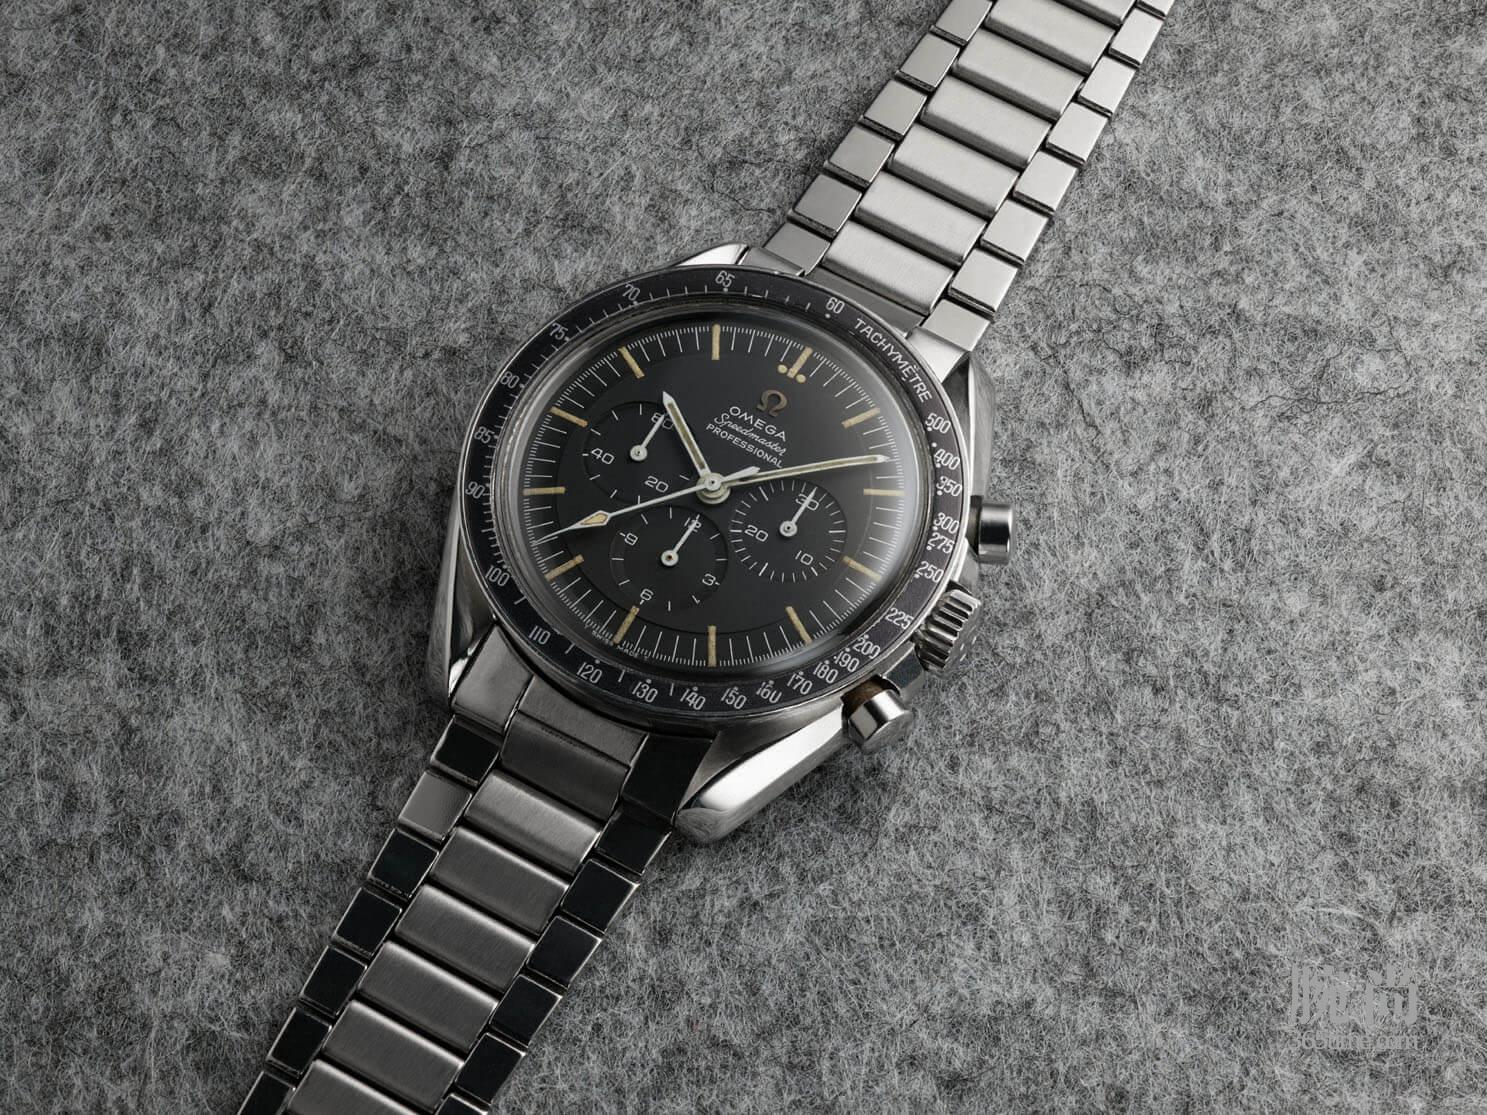 Omega-Speedmaster-Moonwatch-.jpg